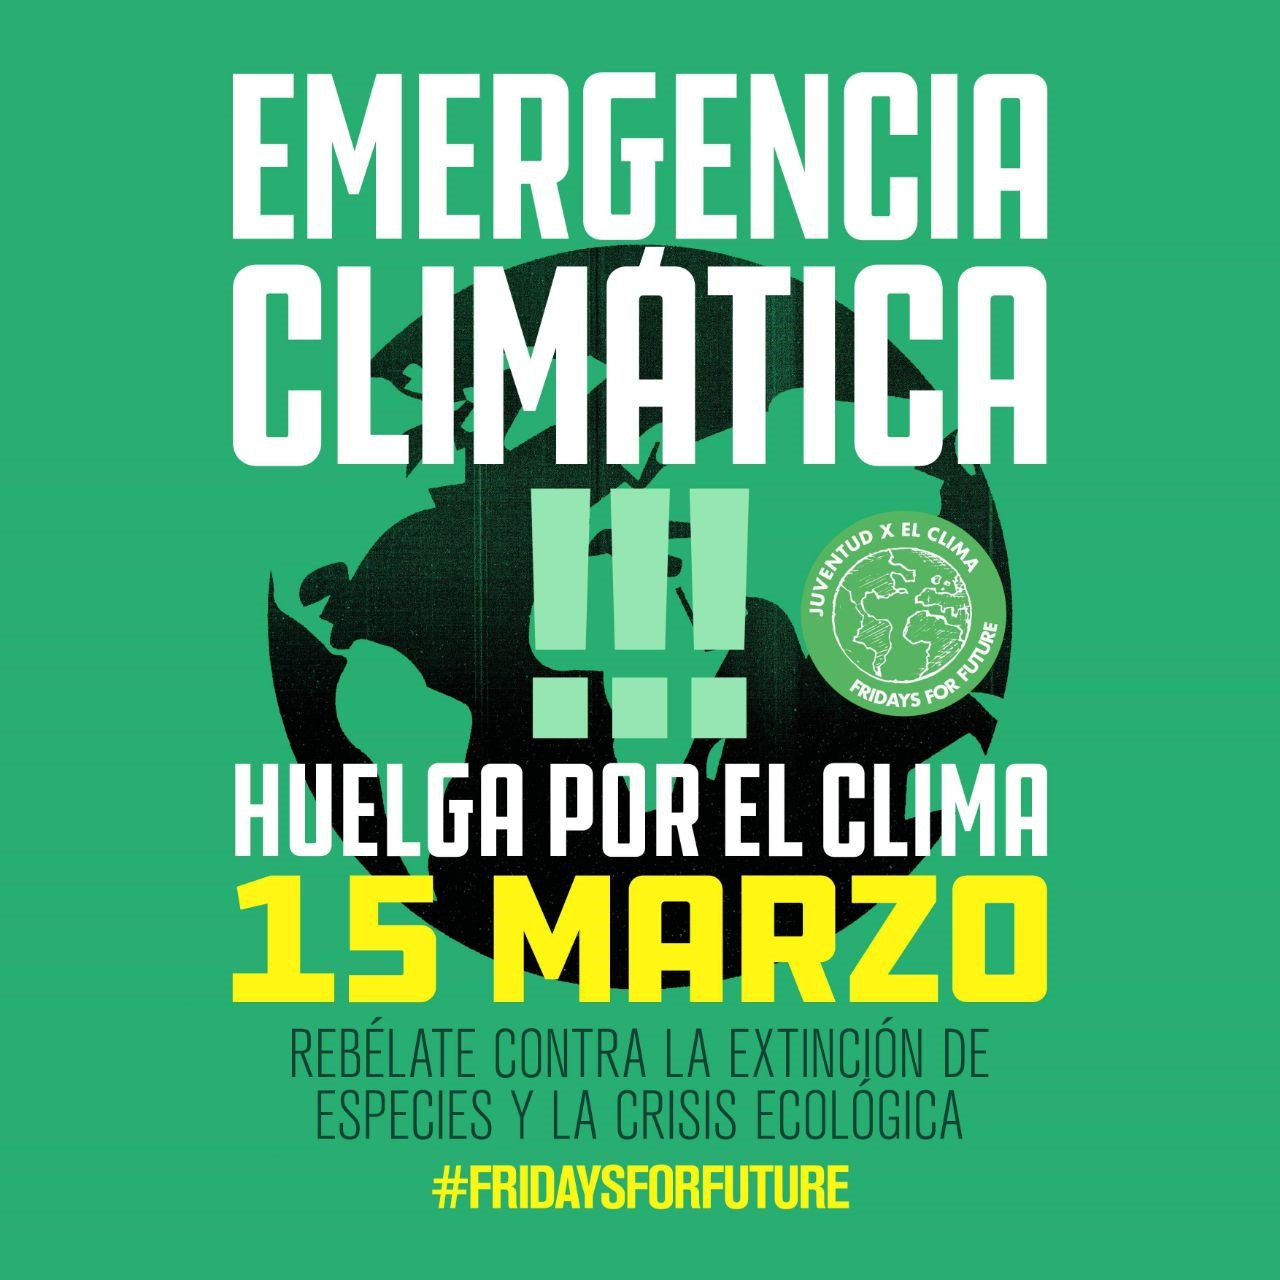 Greta Thunberg Fridays for future huelga por el clima